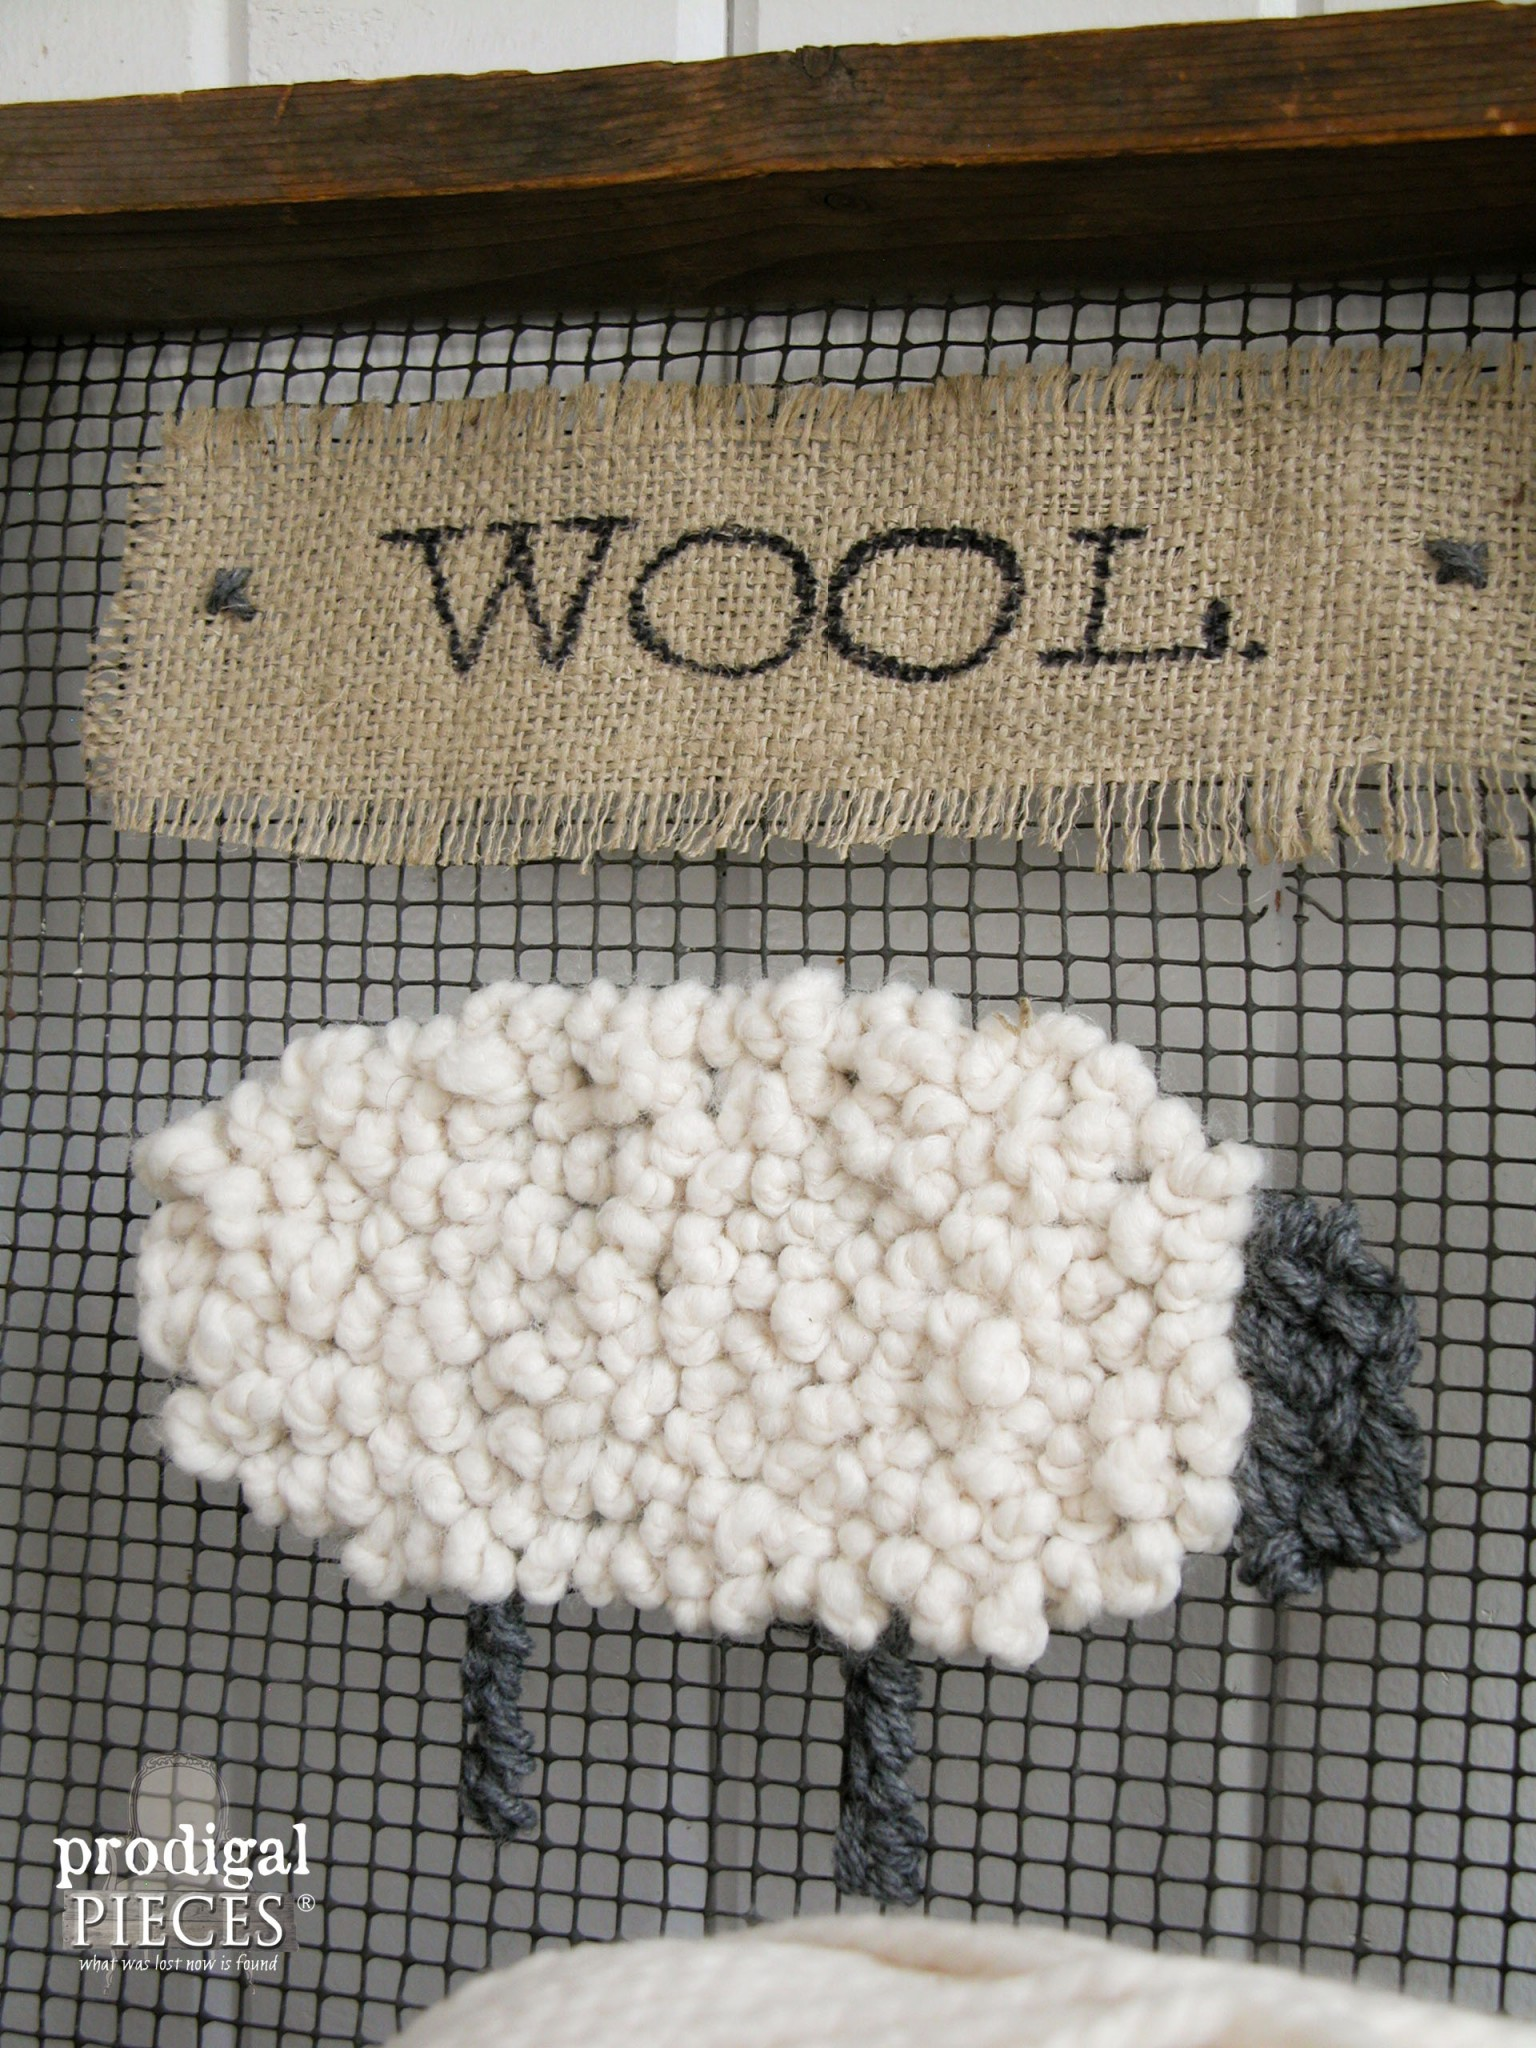 Rustic Wooly Sheep Repurposed Art by Prodigal Pieces | www.prodigalpieces.com